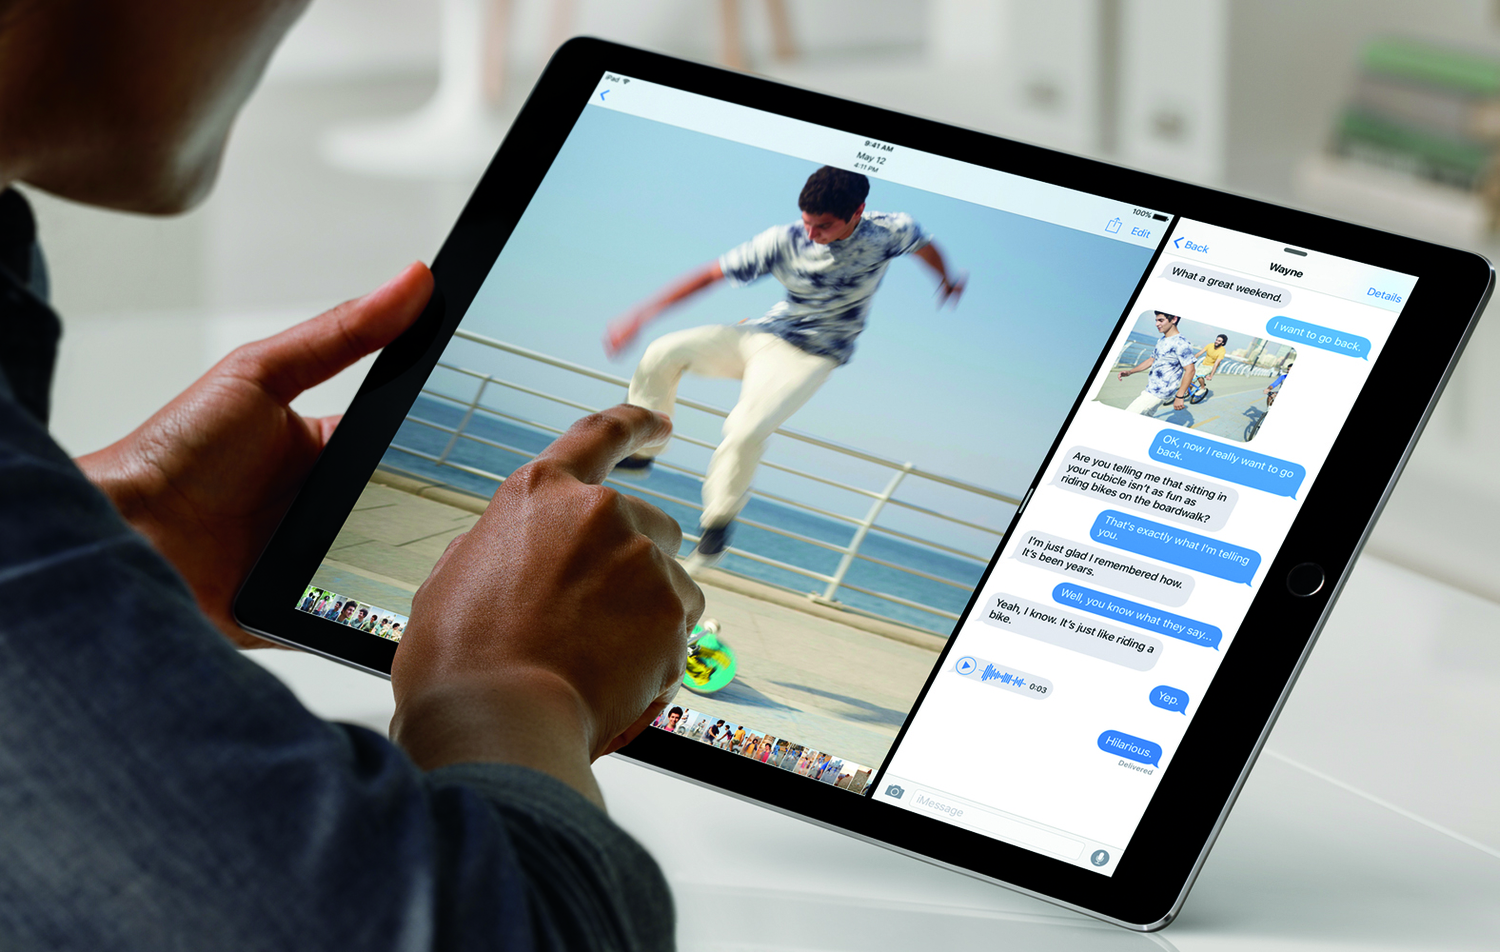 4 Reasons Why You Shouldn't Buy Apple's iPad Pro